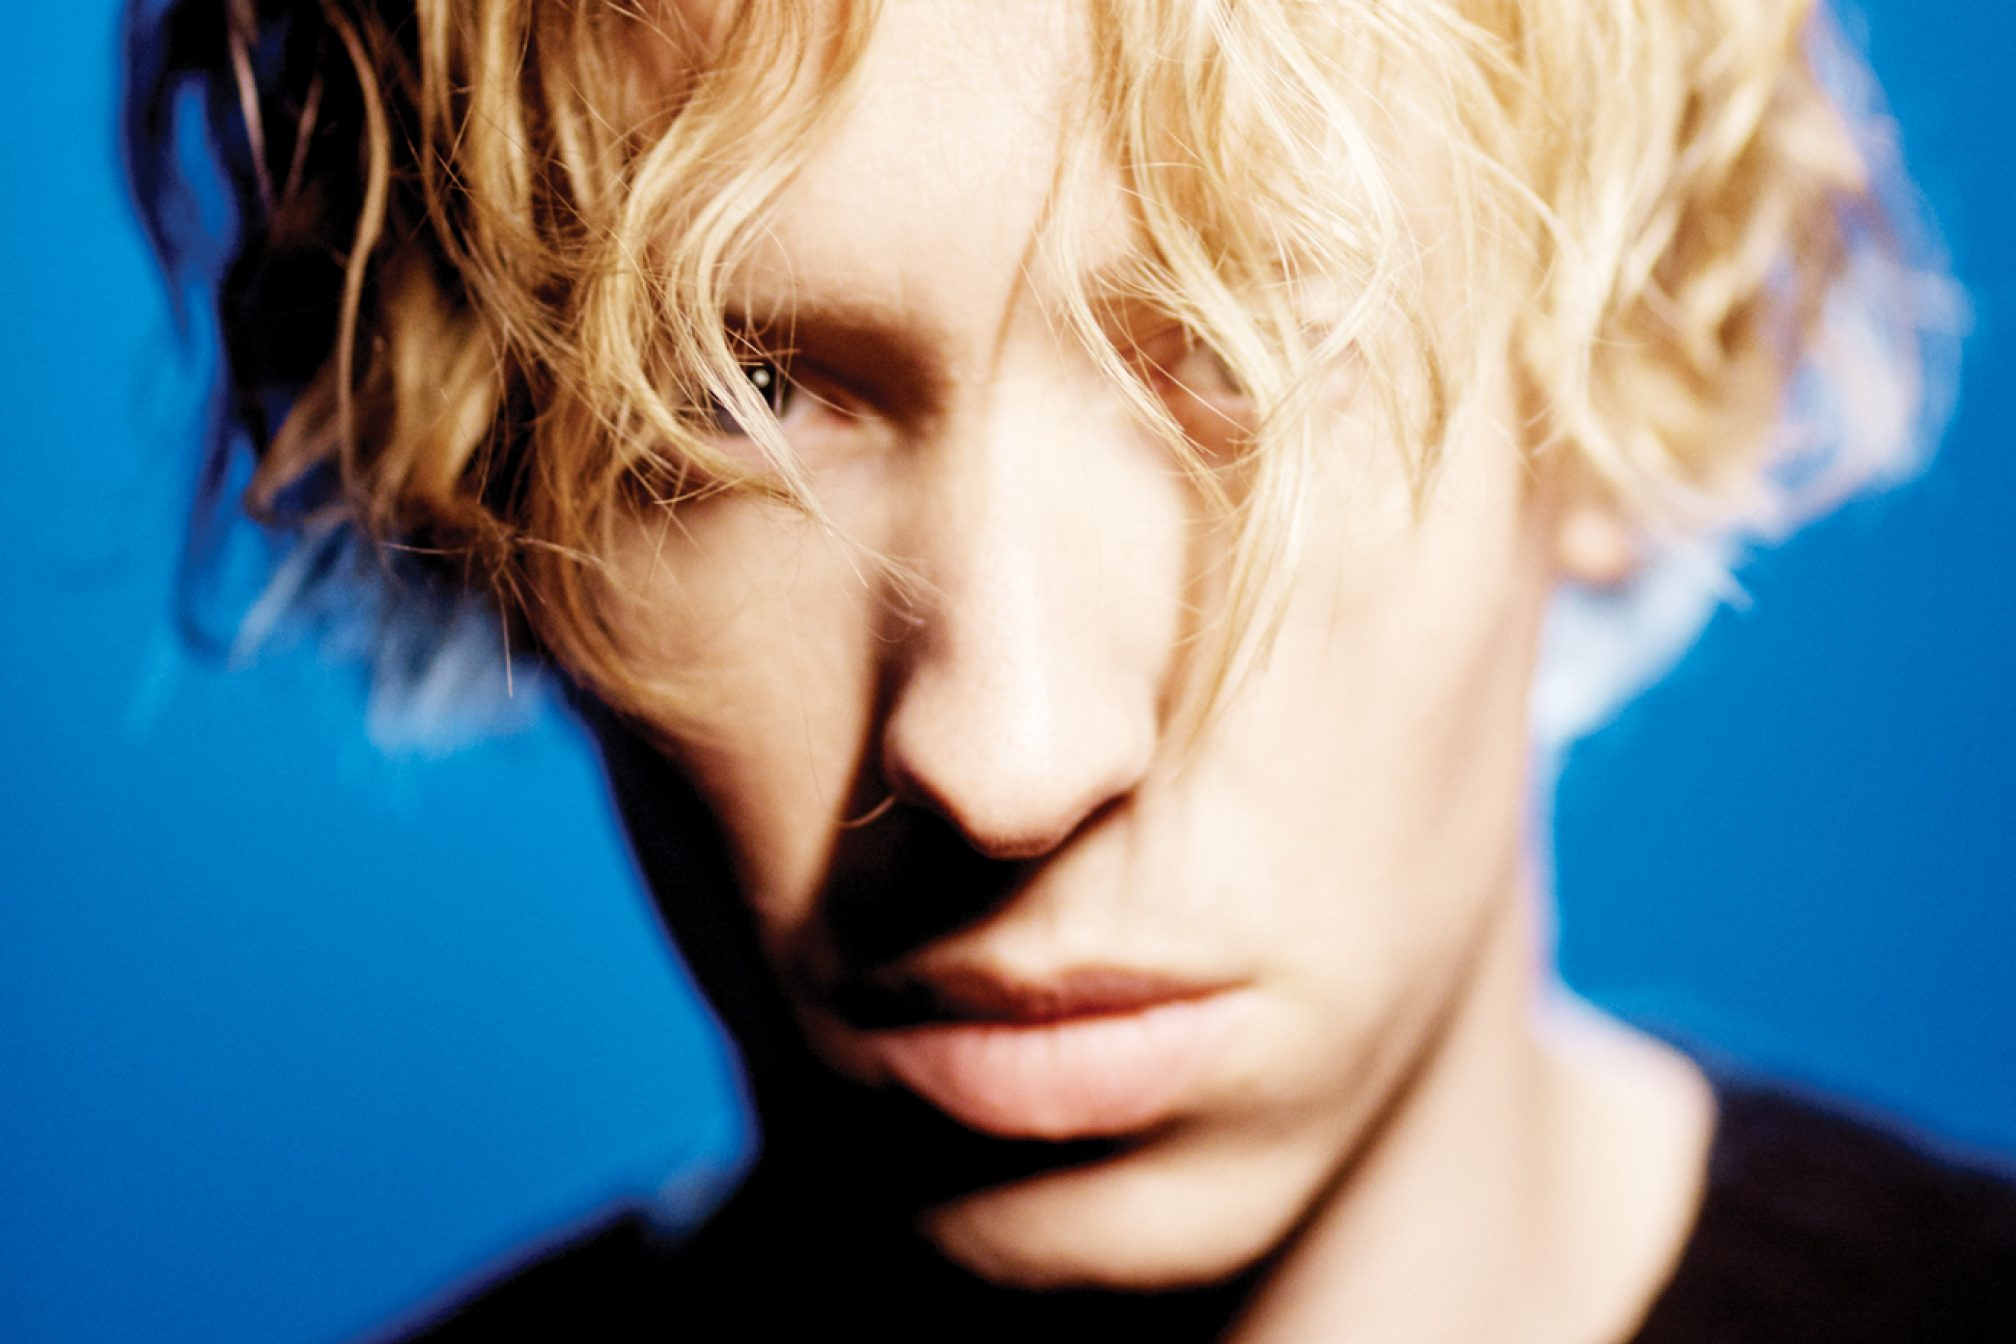 Daniel Avery The Techno Auteur Doing Things With A Distinct